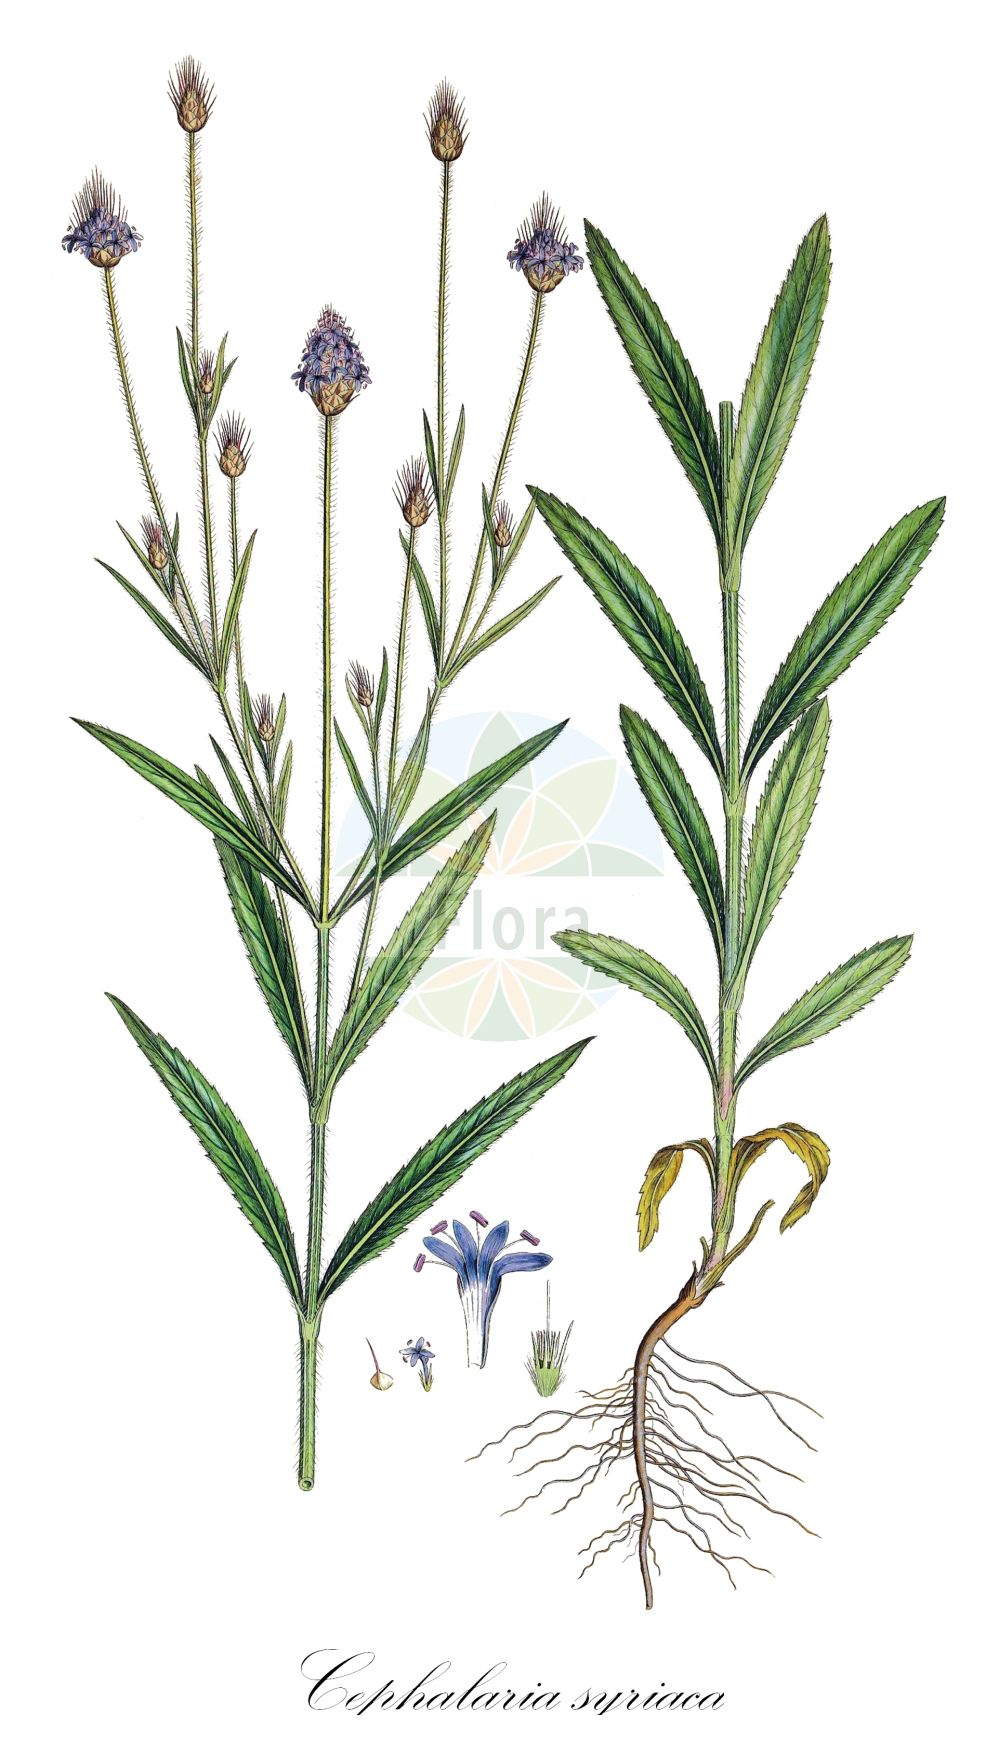 Historische Abbildung von Cephalaria syriaca. Das Bild zeigt Blatt, Bluete, Frucht und Same. ---- Historical Drawing of Cephalaria syriaca.The image is showing leaf, flower, fruit and seed.(Cephalaria syriaca,Cephalaria boissieri,Scabiosa dichotoma,Scabiosa syriaca,Cephalaria,Caprifoliaceae,Geissblattgewaechse,Honeysuckle family,Blatt,Bluete,Frucht,Same,leaf,flower,fruit,seed,Sibthrop & Smith (1806-1840))